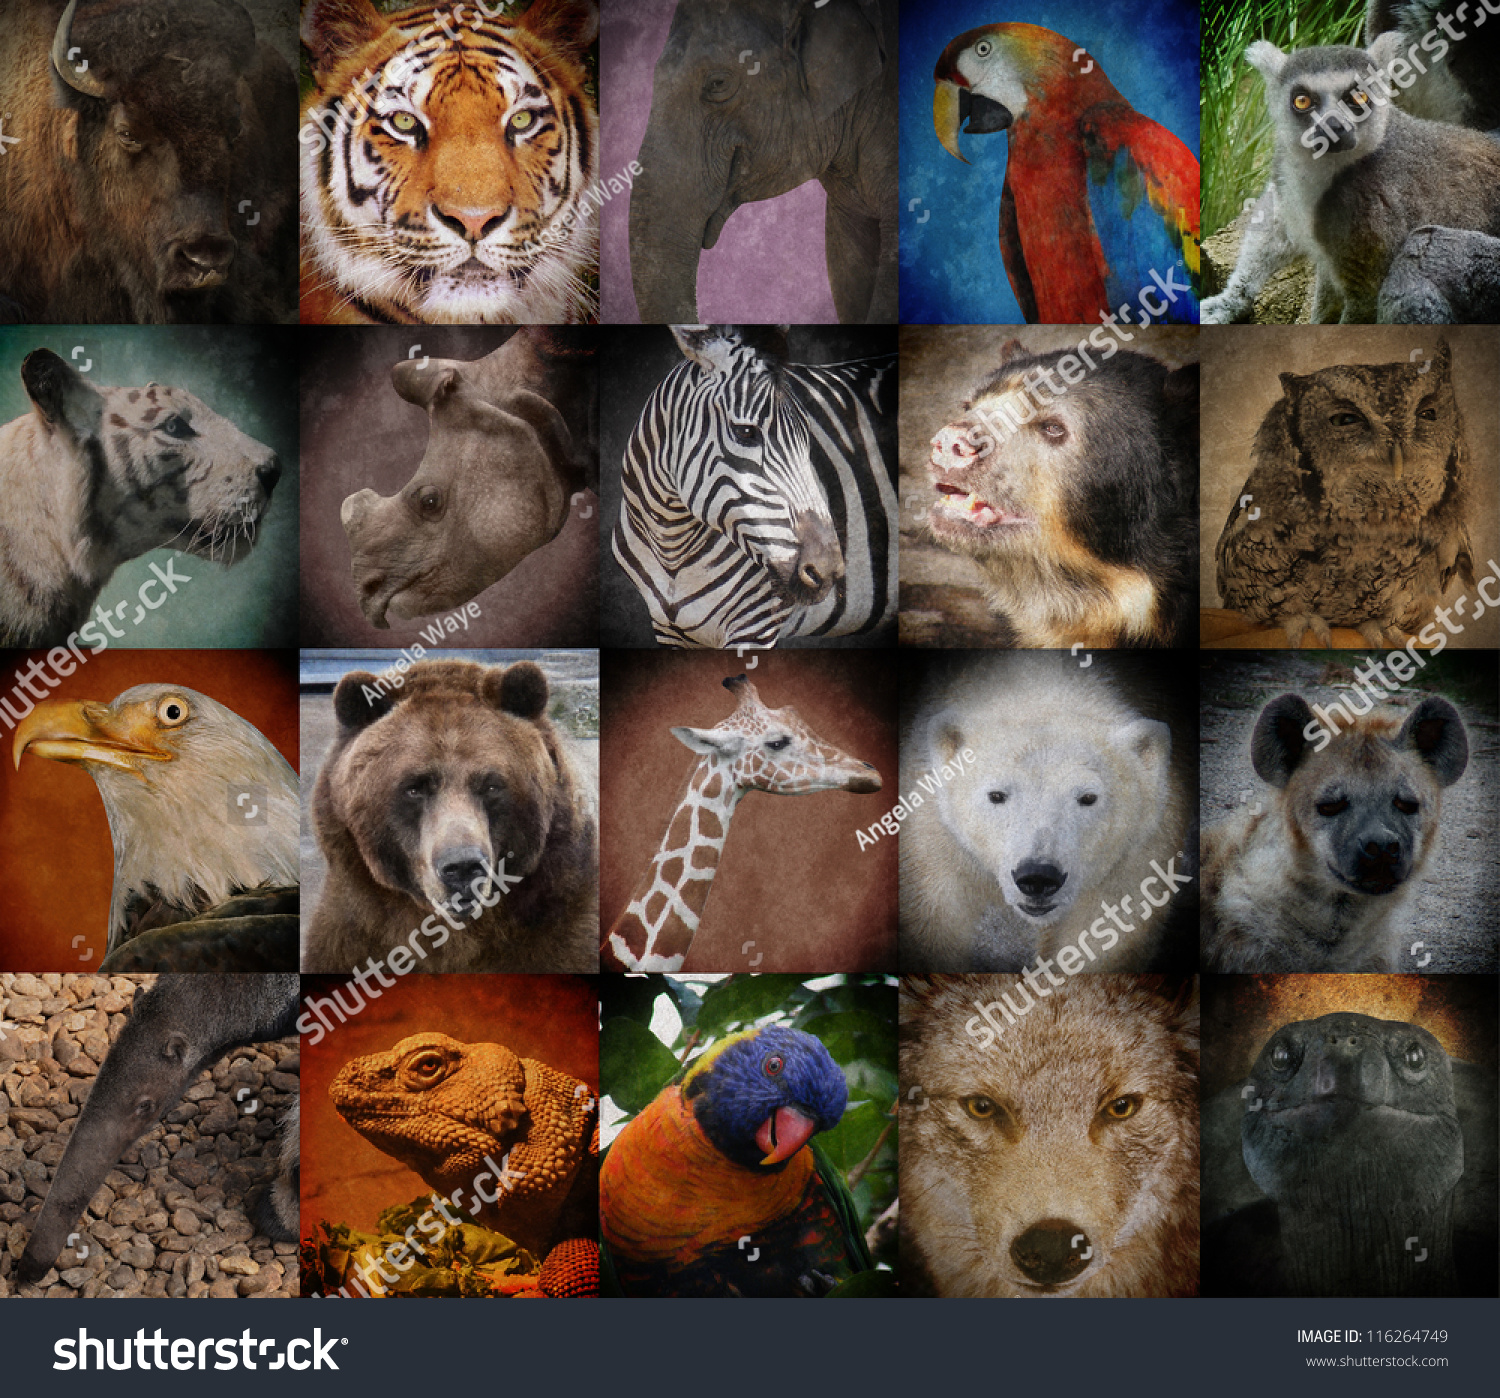 Image result for a group of different animals